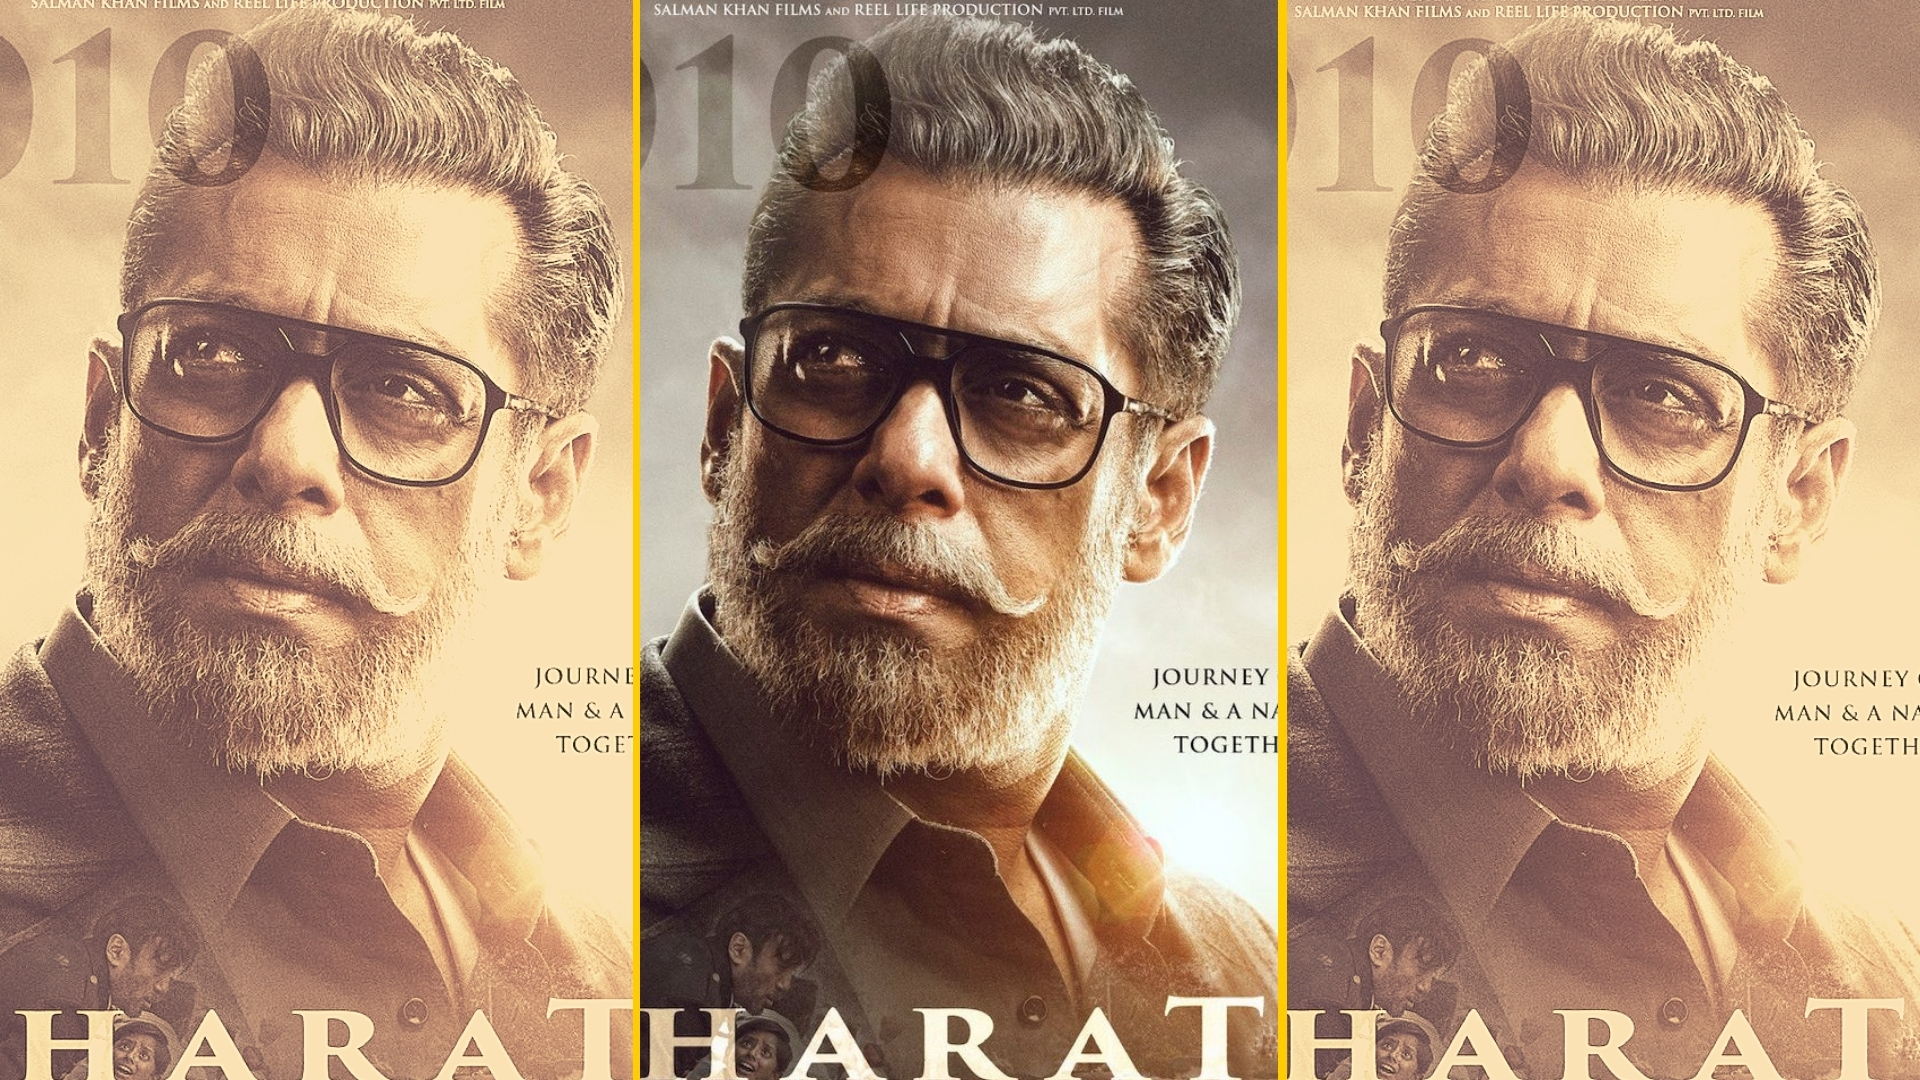 Here's How Salman Was Transformed into an Old Man in 'Bharat'